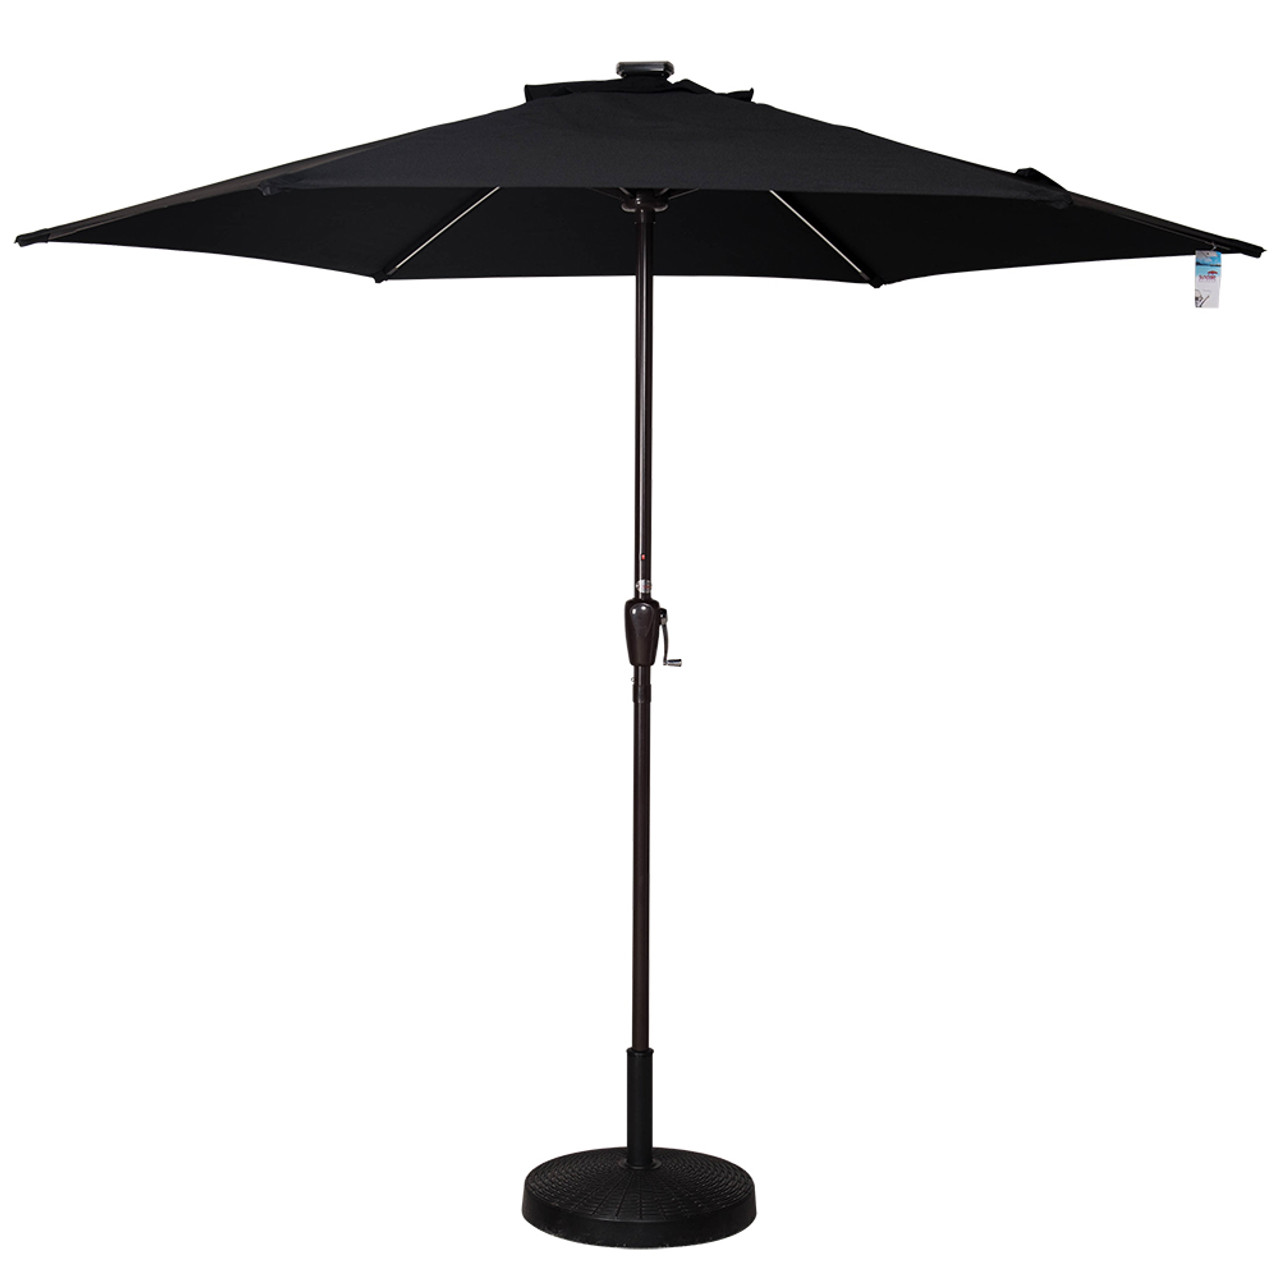 Led Patio Umbrella Reviews: Deluxe Solar Powered LED Stripe Lighted Outdoor Patio